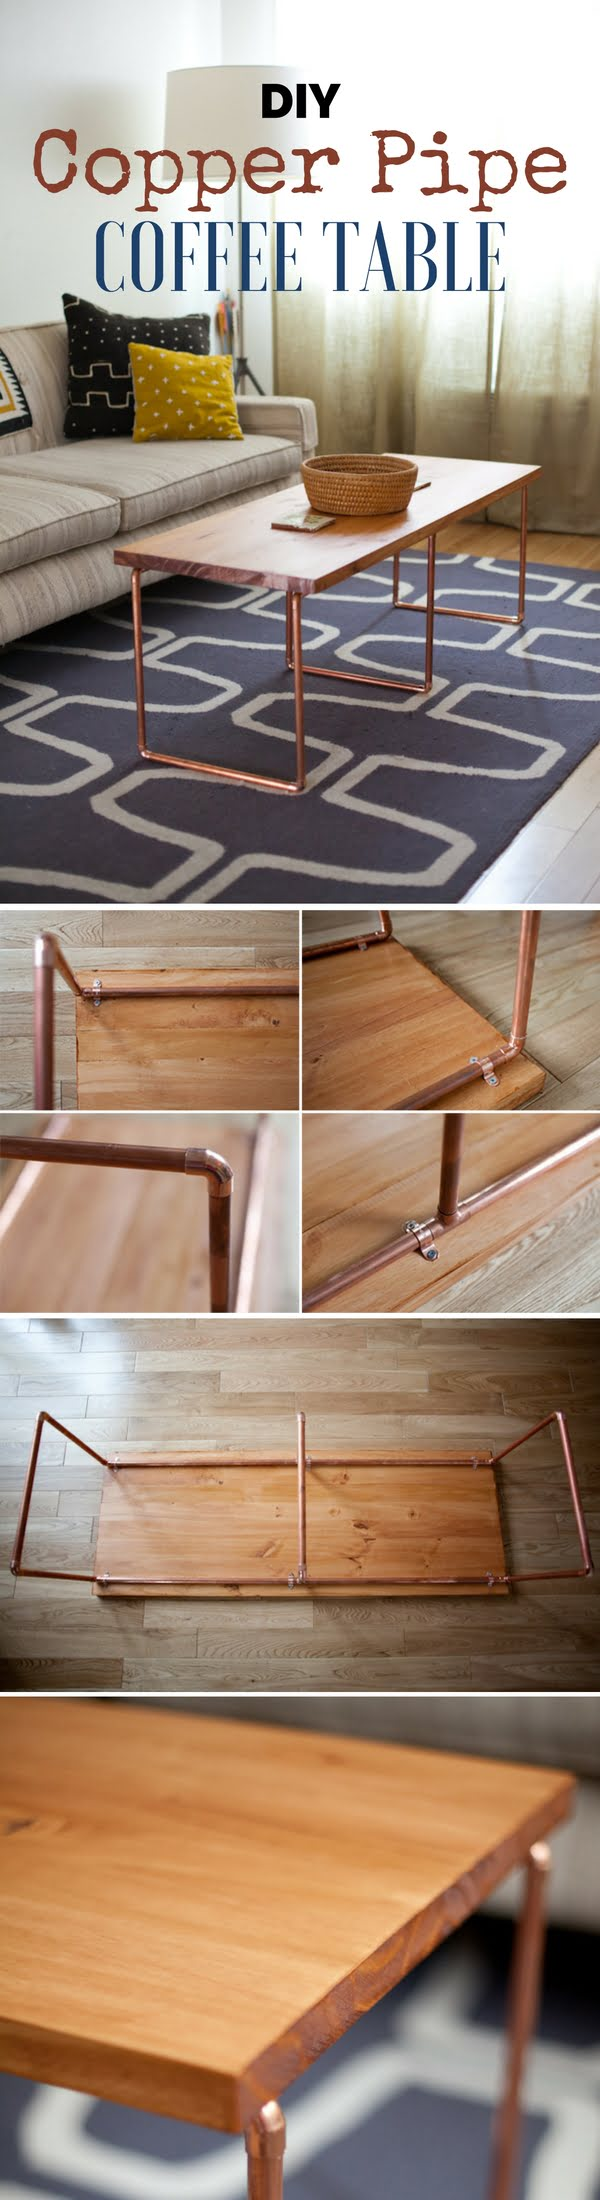 Check Out How To Build This Easy DIY Copper Pipe Coffee Table